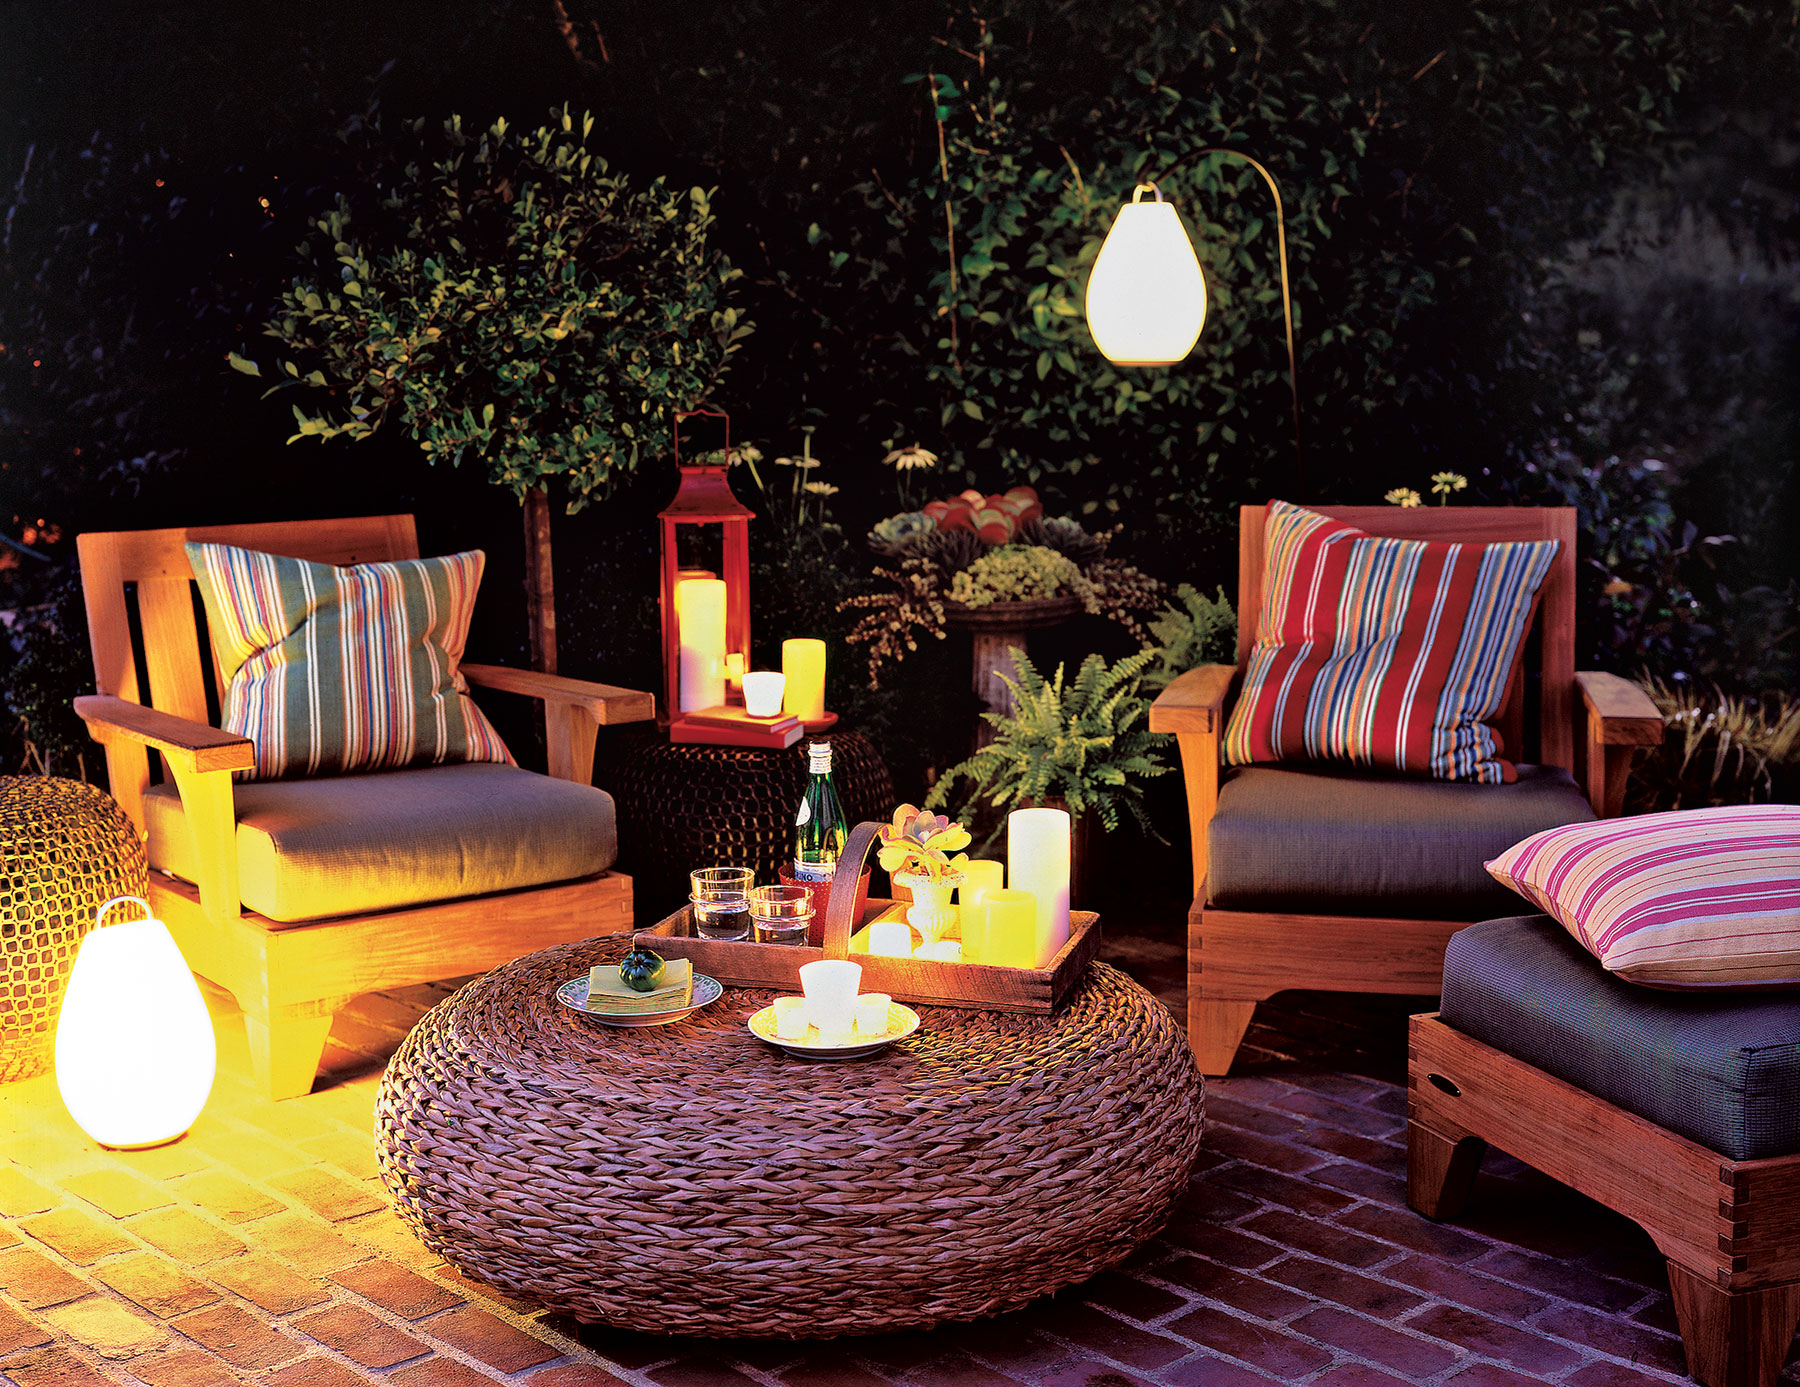 creative outdoor lighting ideas. Backyard Lit With Battery-powered Lights Creative Outdoor Lighting Ideas E